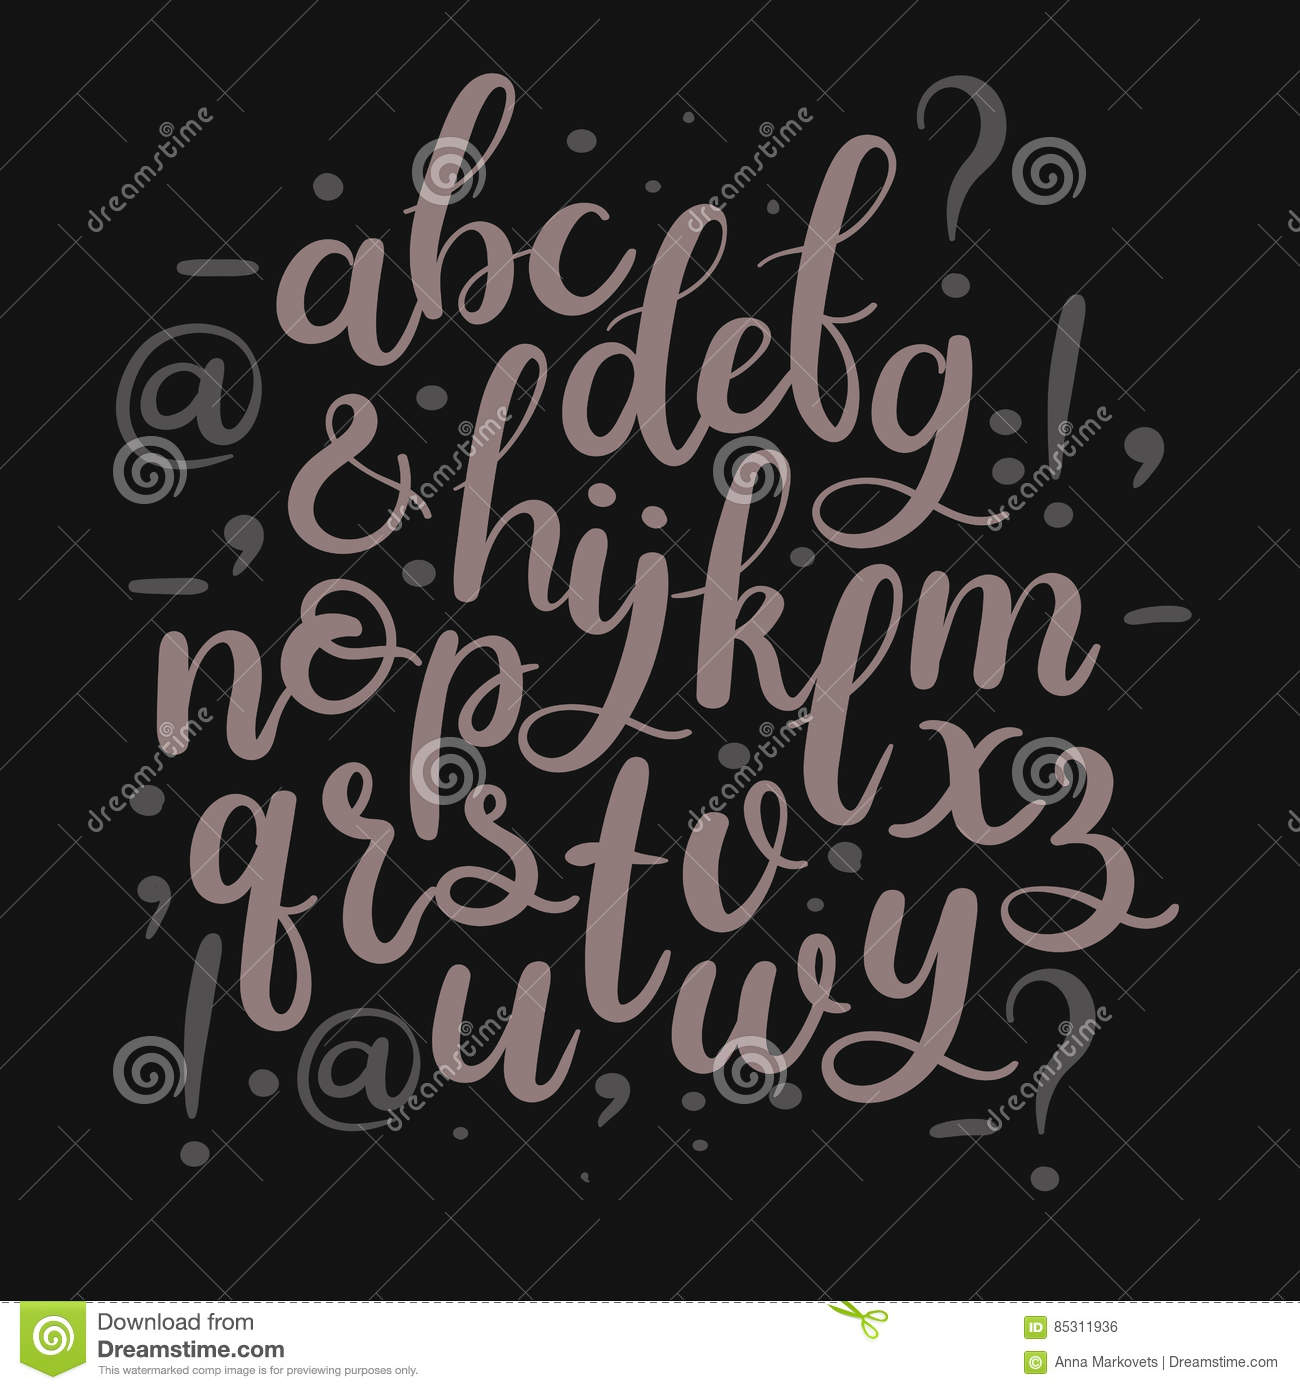 Hand drawn brush letters modern calligraphy font